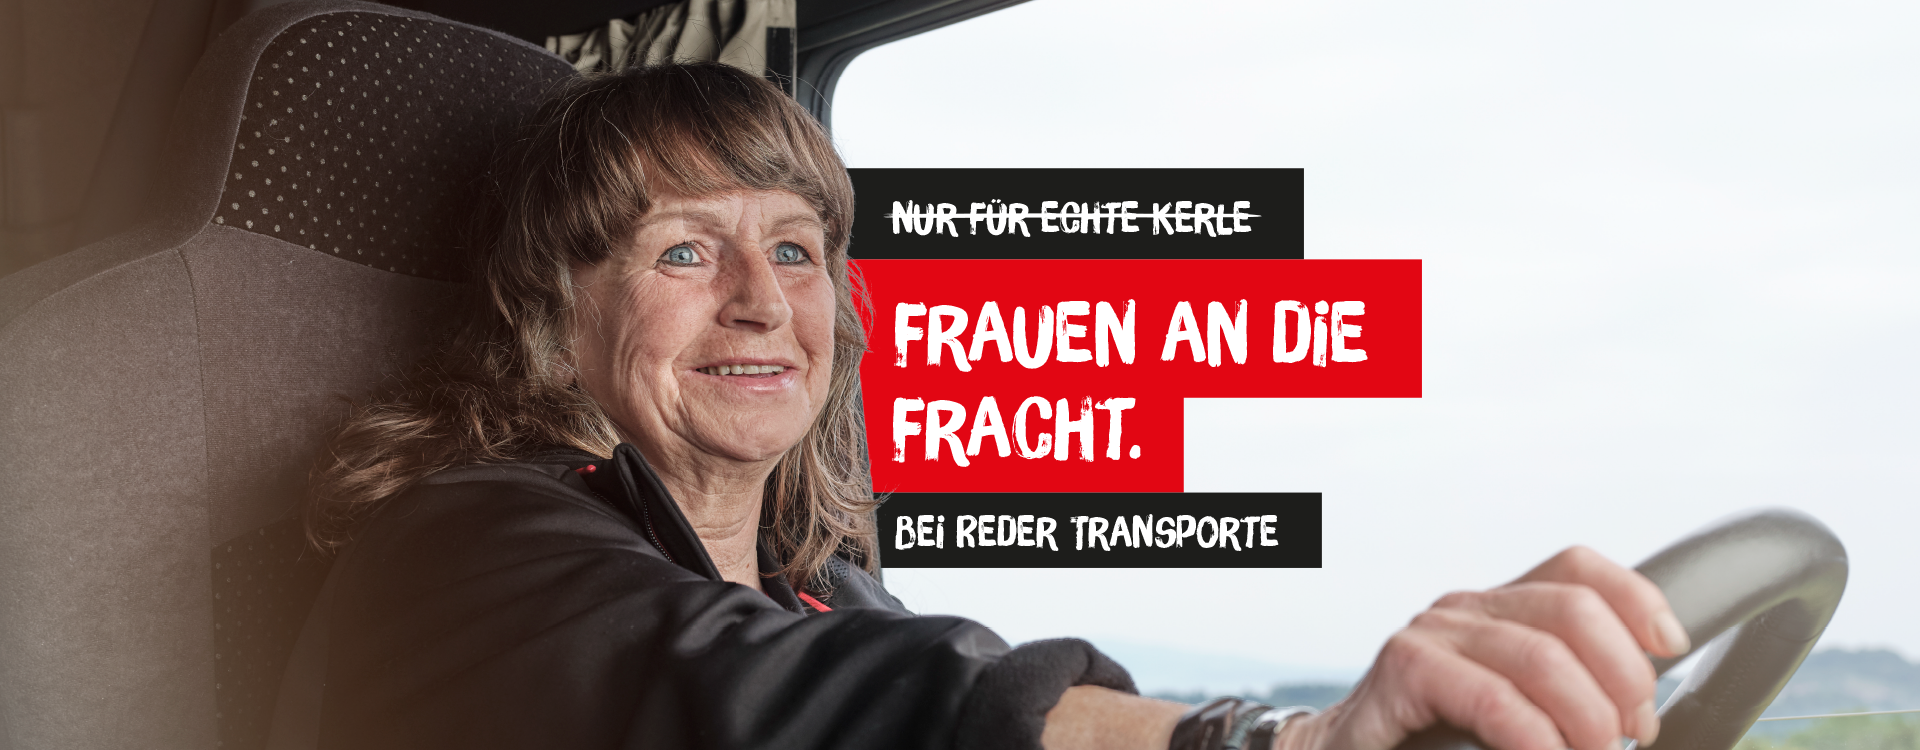 REDER Transporte | Esther | Frauen an die Fracht.